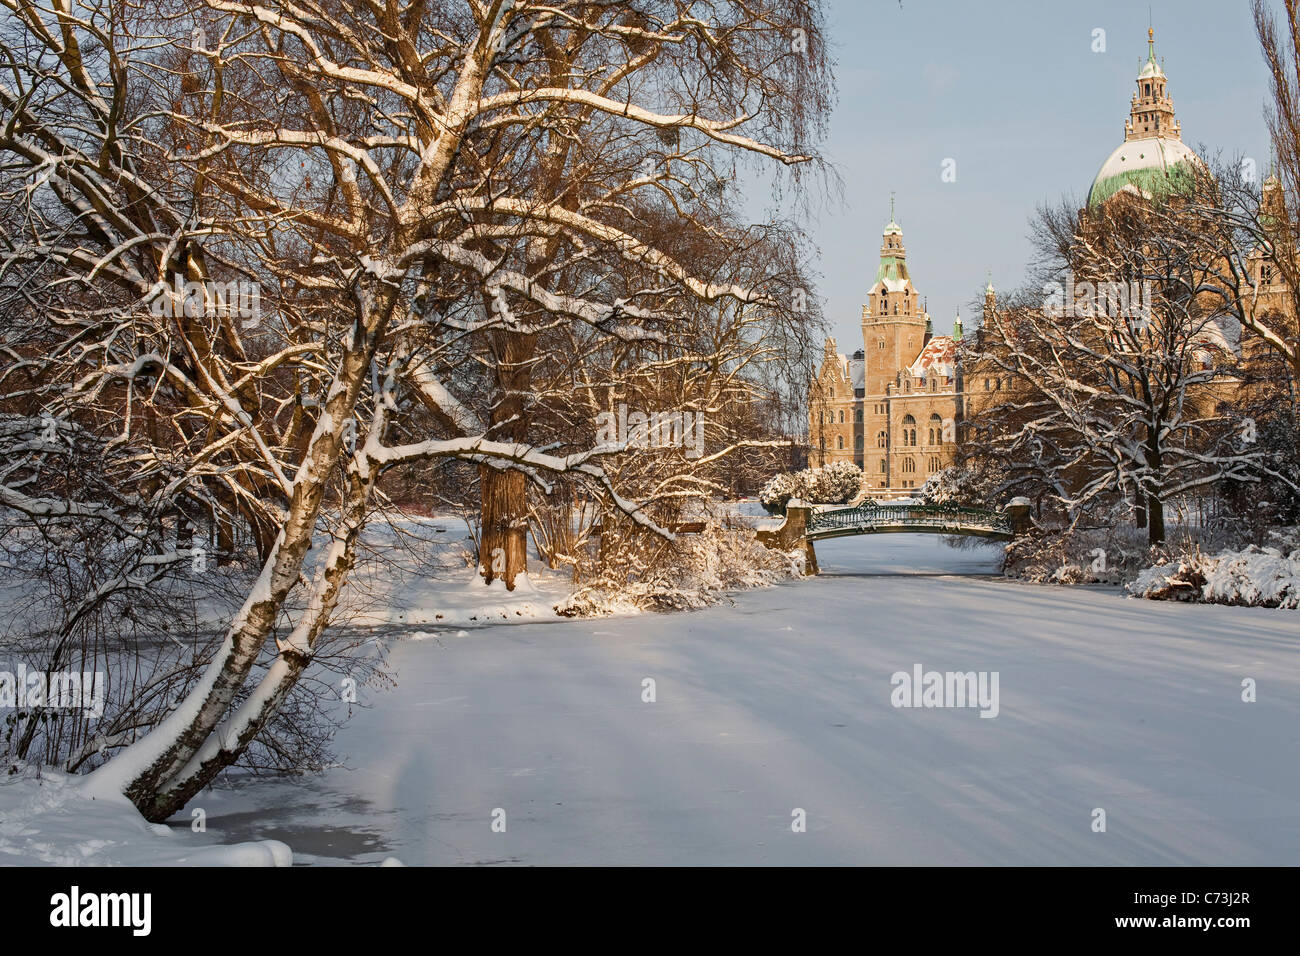 hannover germany winter stockfotos hannover germany winter bilder alamy. Black Bedroom Furniture Sets. Home Design Ideas